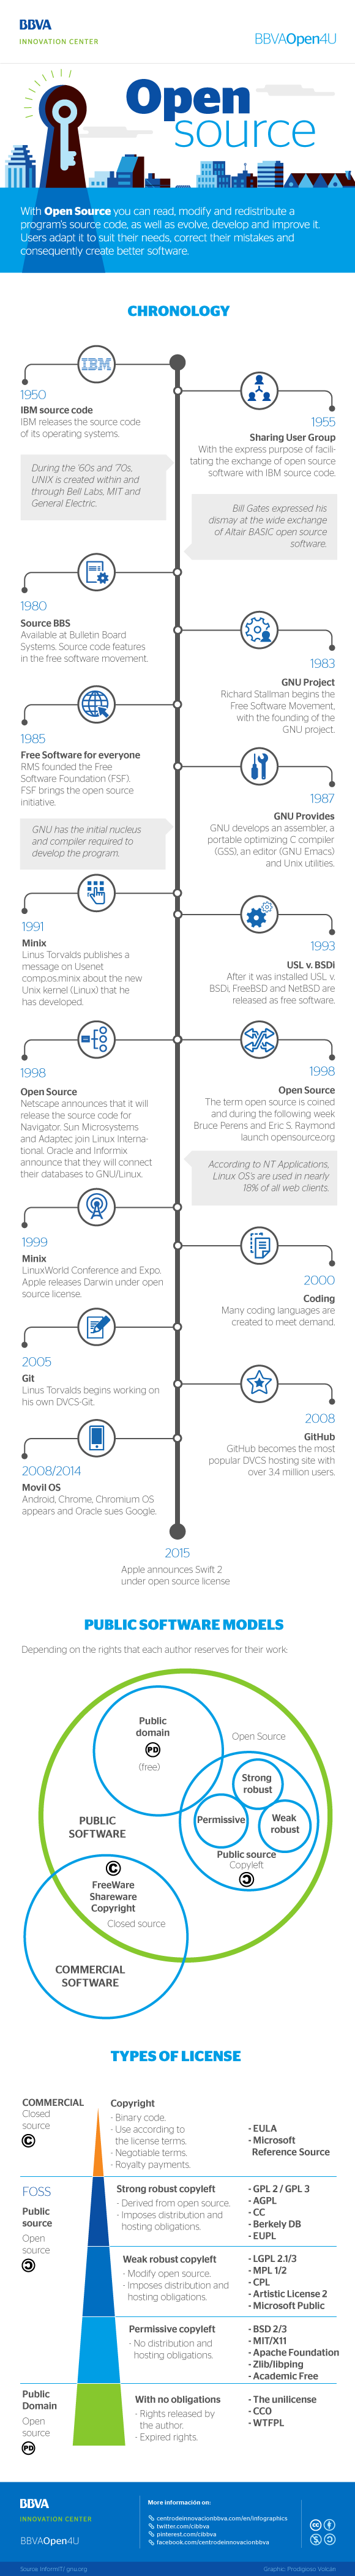 Infographic: Chronology of open source